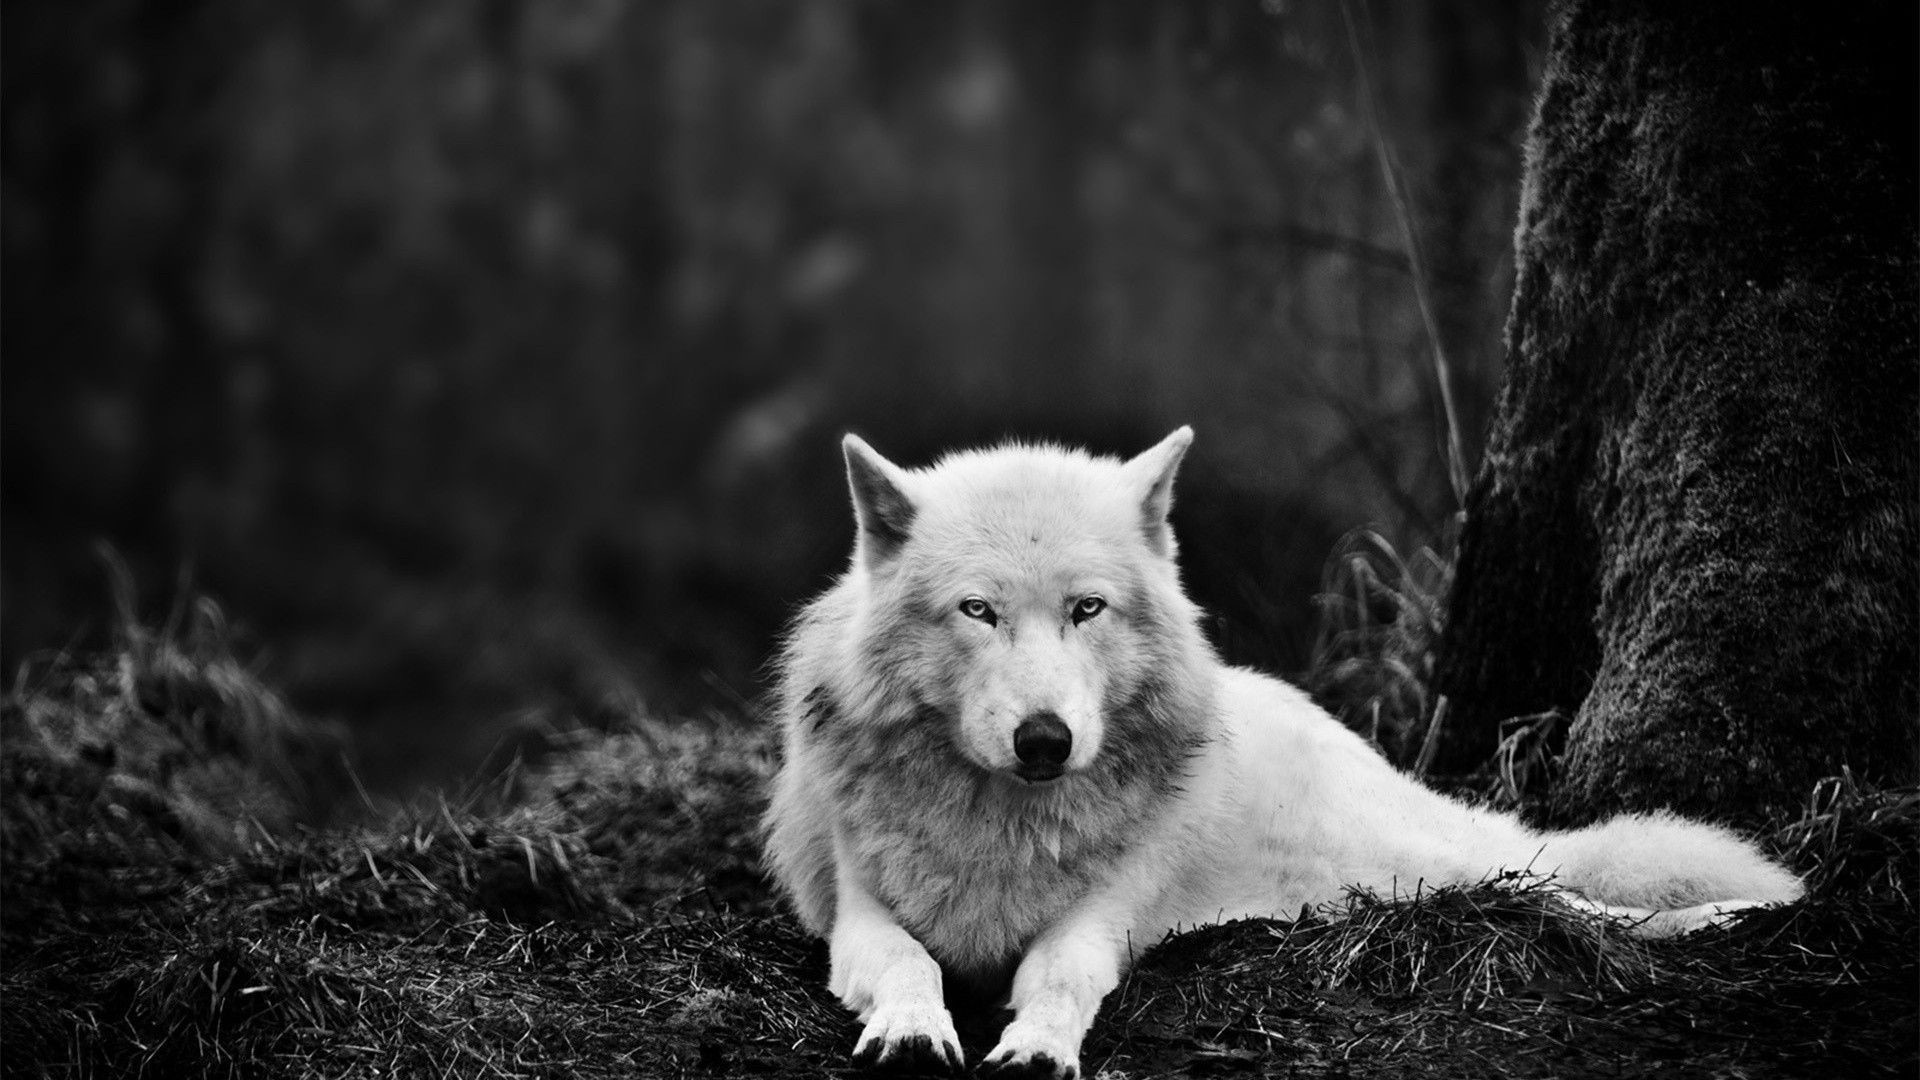 1920x1080  Full HD p Wolf Wallpapers HD, Desktop Backgrounds White Wolves  Wallpapers Wallpapers)